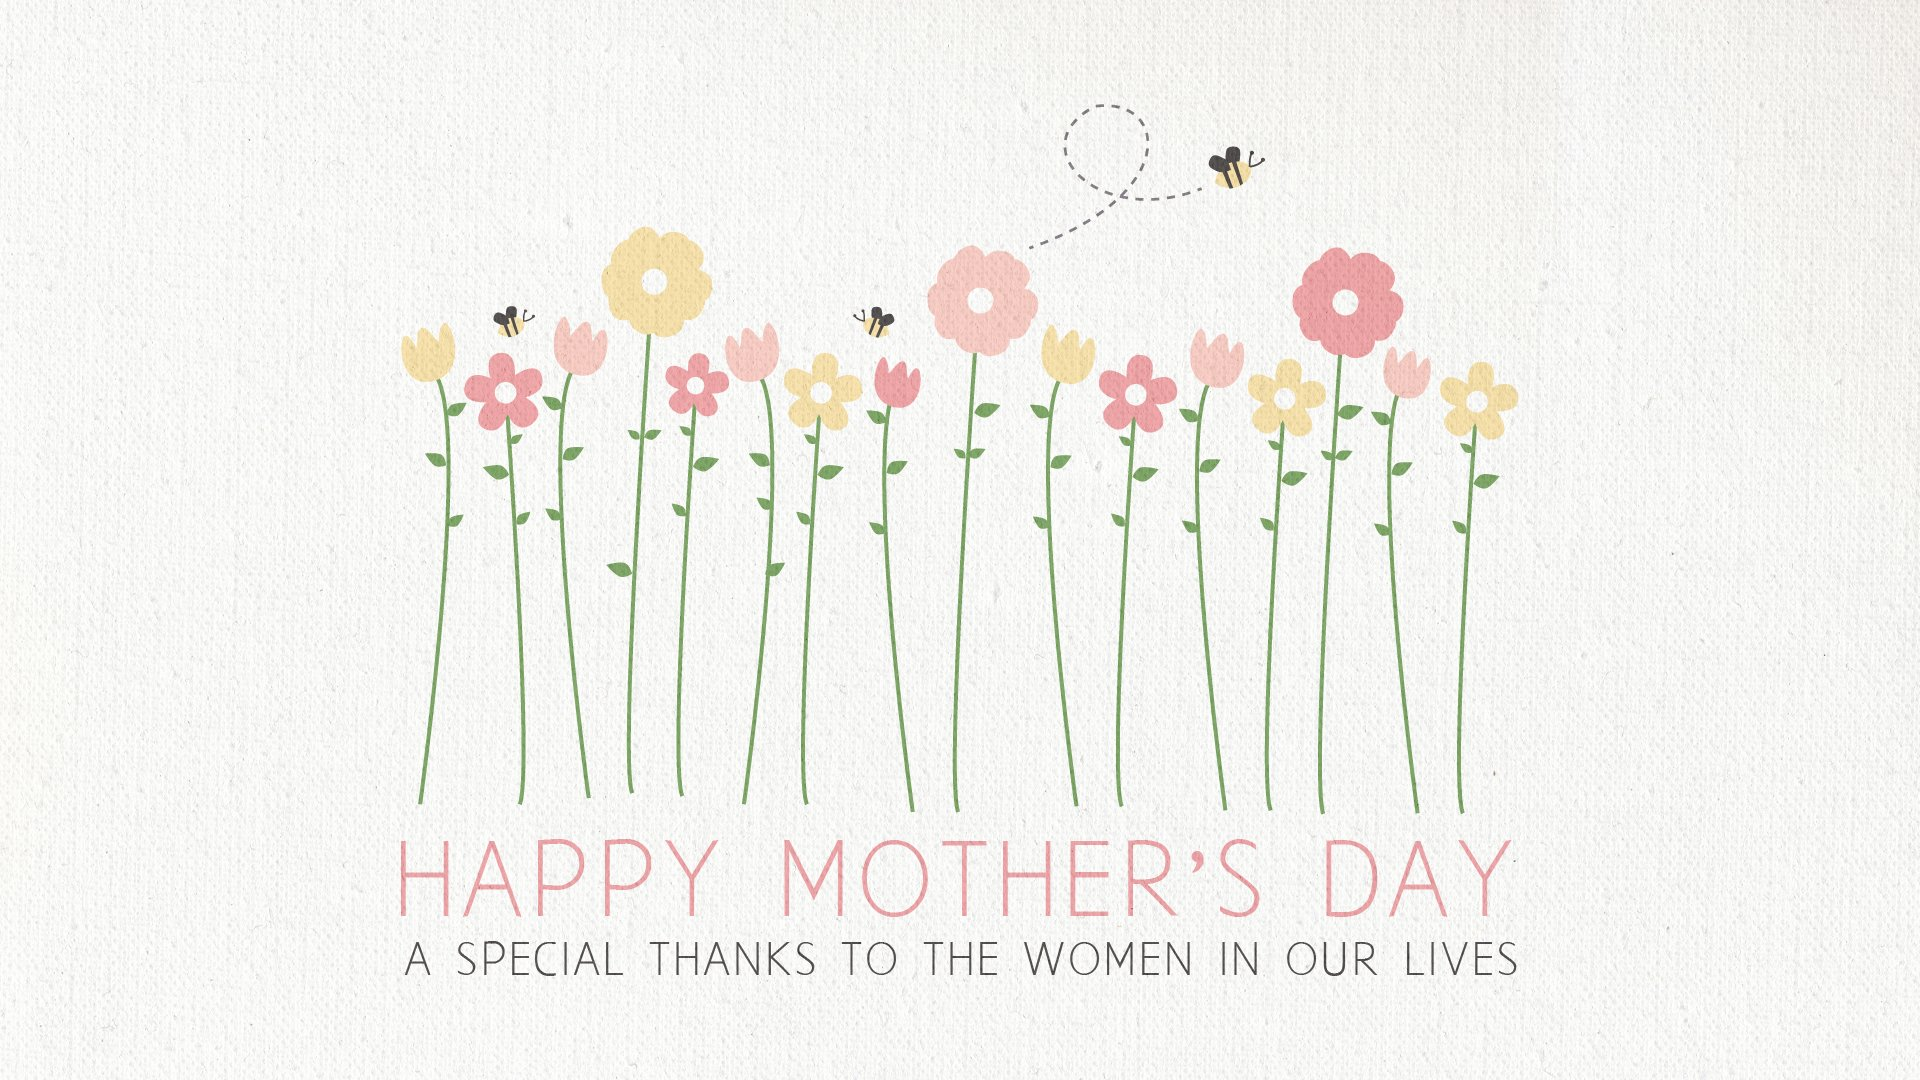 Happy Mothers Day   Wallpaper High Definition High Quality 1920x1080